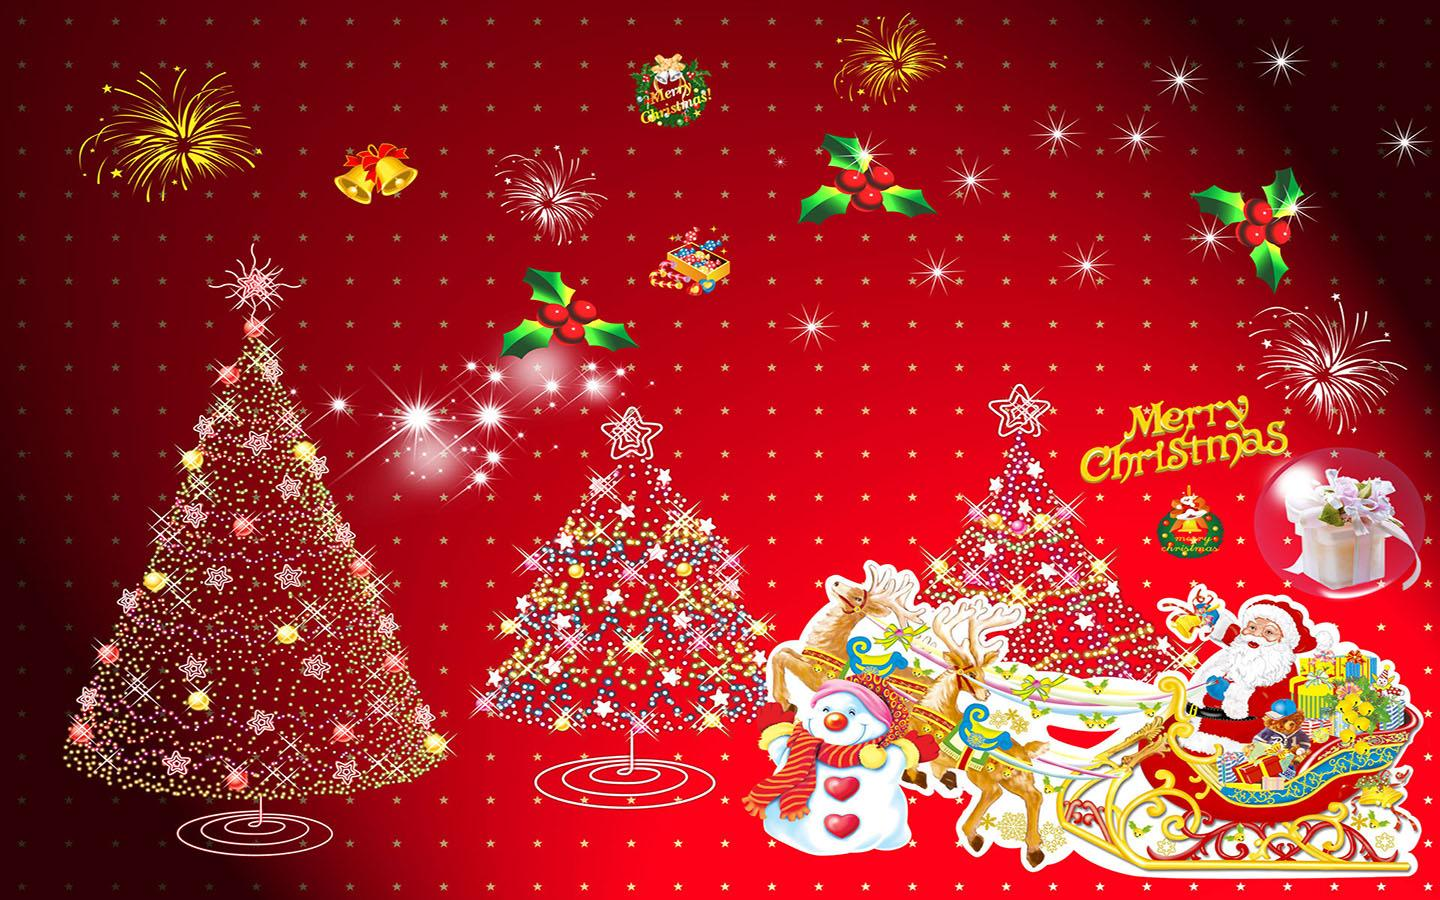 merry christmas wallpaper - android apps on google play